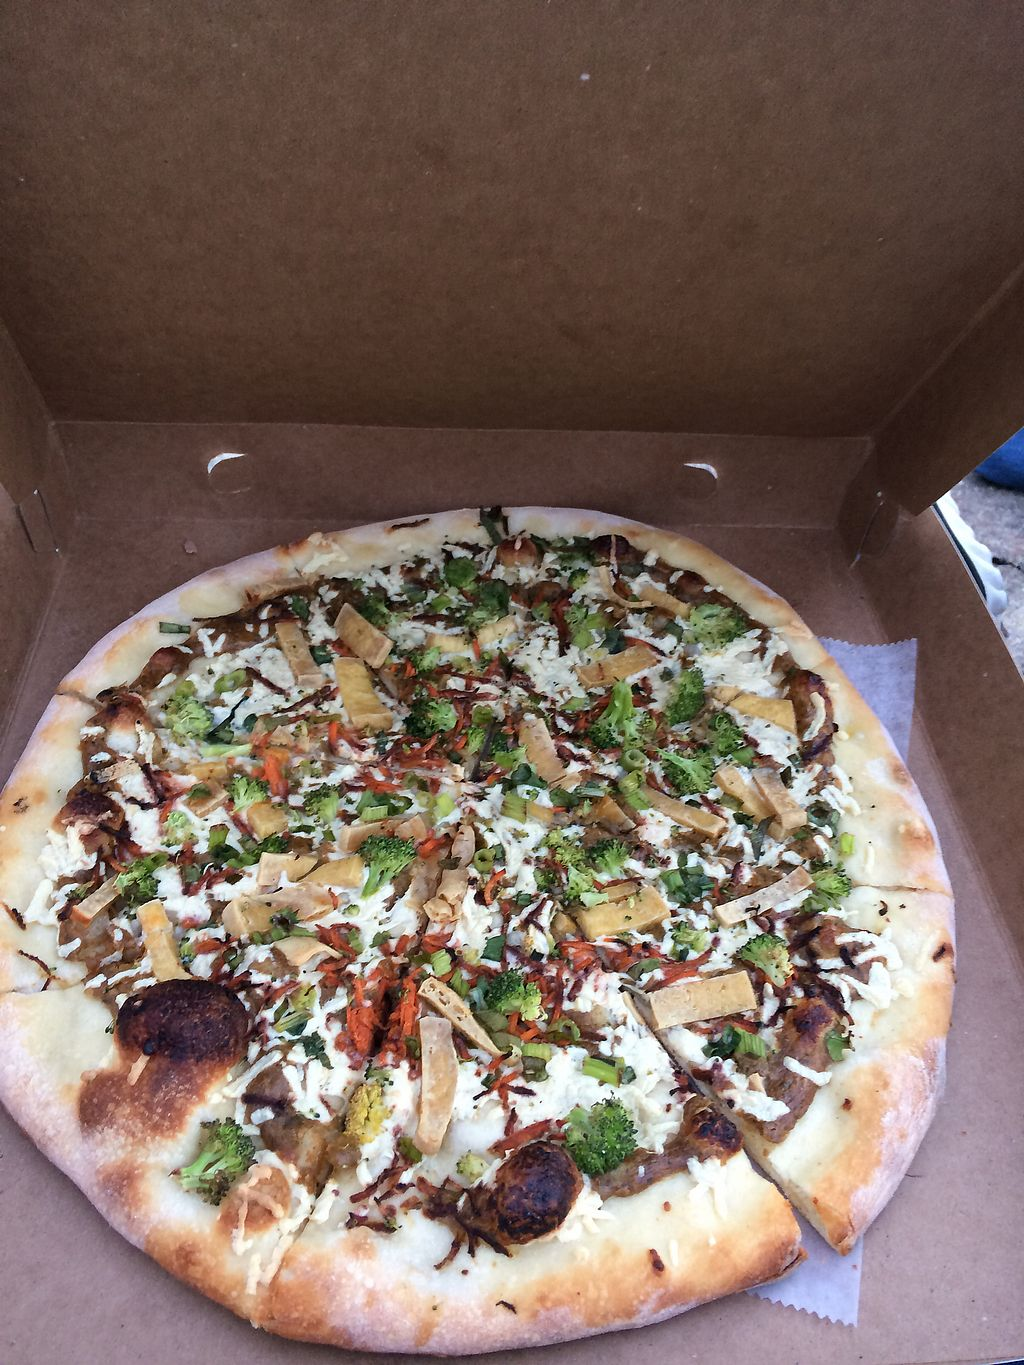 """Photo of Reel Pizza Cinerama  by <a href=""""/members/profile/giant%20bunnie"""">giant bunnie</a> <br/>the Manchurian candidate (the pizzas have movie names )  <br/> July 27, 2017  - <a href='/contact/abuse/image/33540/285515'>Report</a>"""